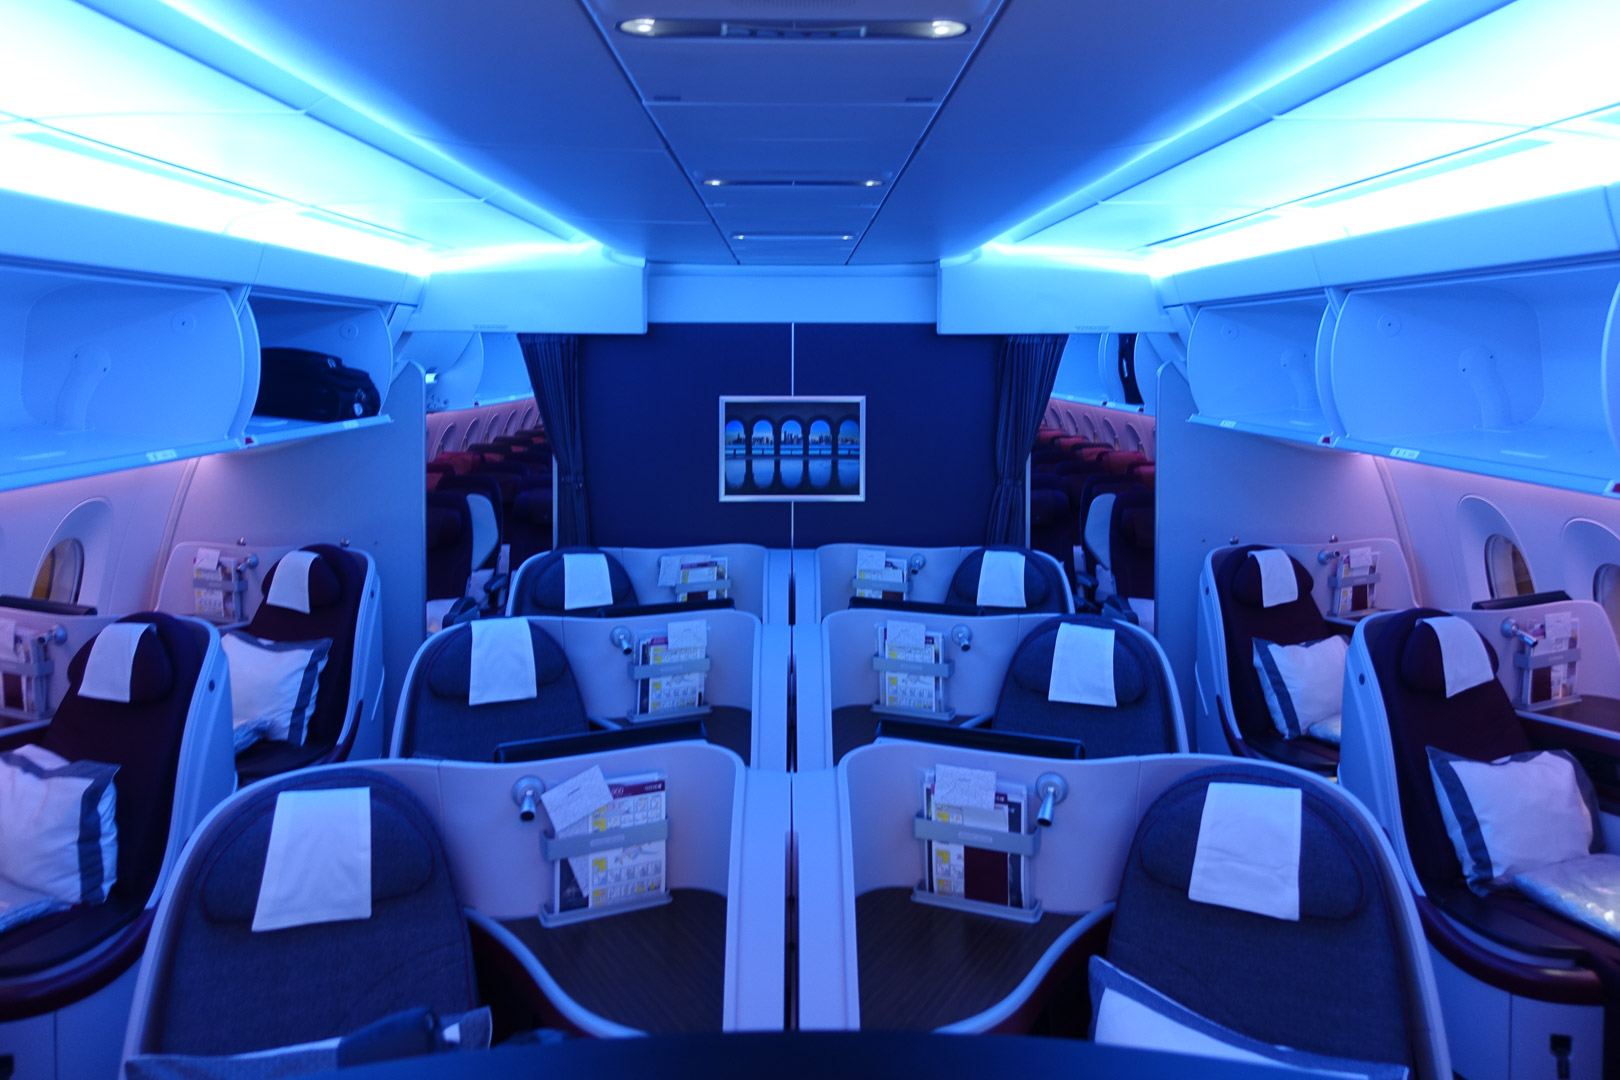 qatar airways business class erfahrungsbericht test airbus a350 doha. Black Bedroom Furniture Sets. Home Design Ideas